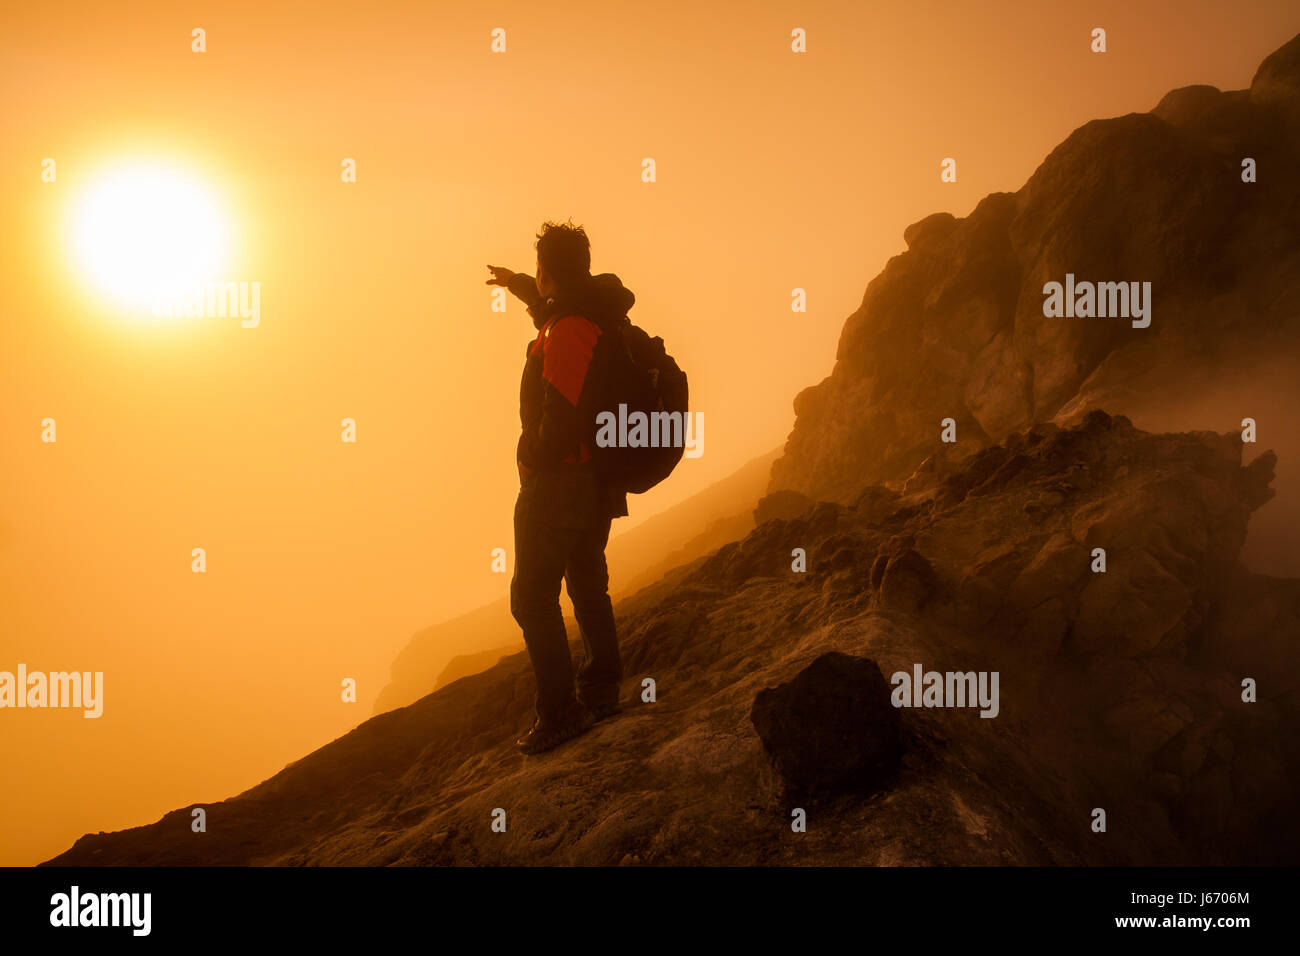 Backpacker pointing at the rising sun during sunrise over Mount Merapi (Gunung Merapi) a highly active volcano in - Stock Image